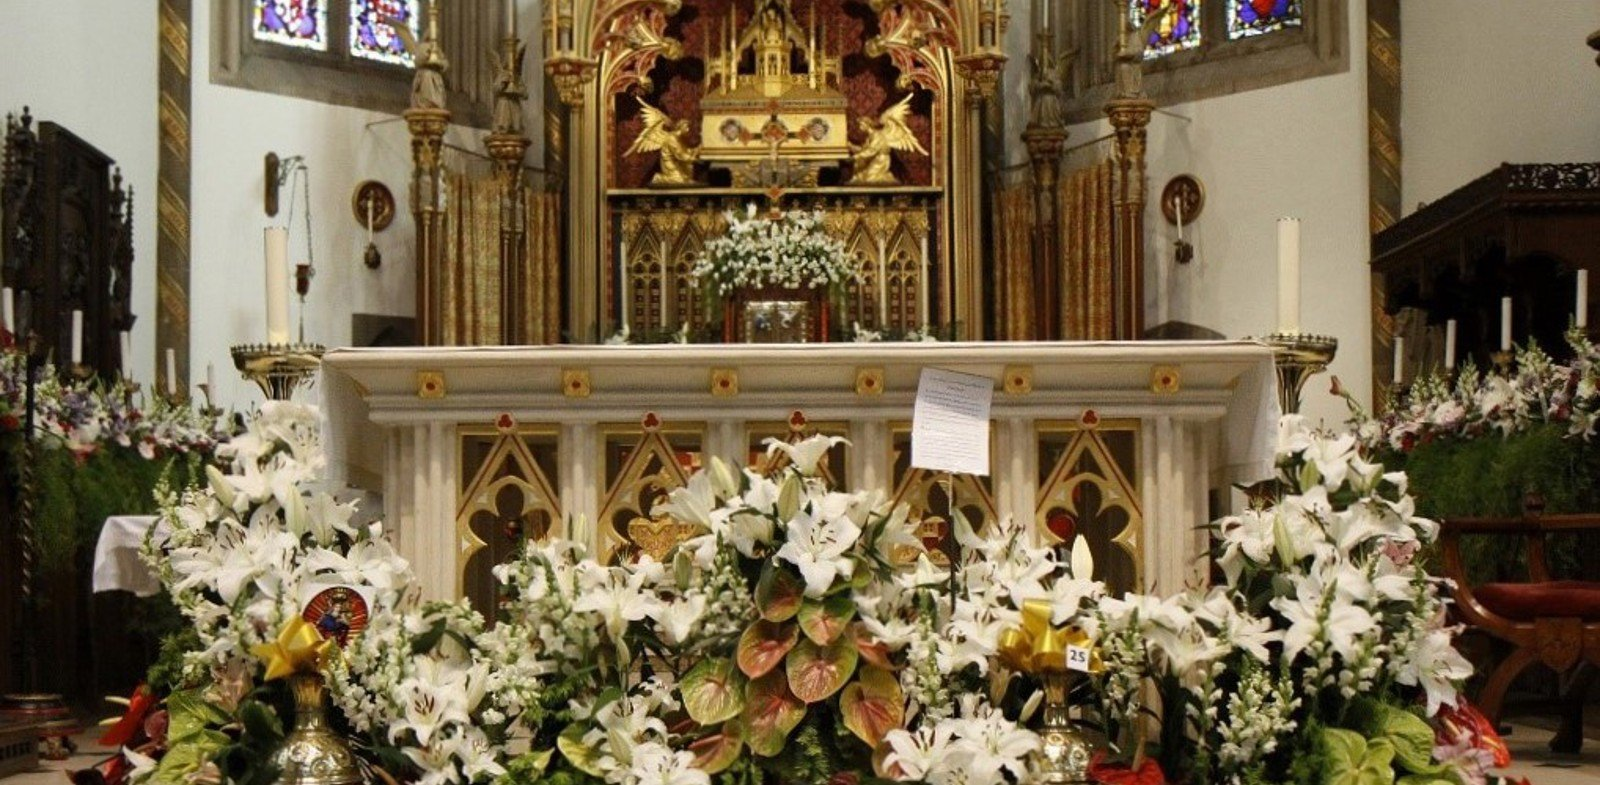 POSTPONED: St Chad's Cathedral Flower Festival 2020